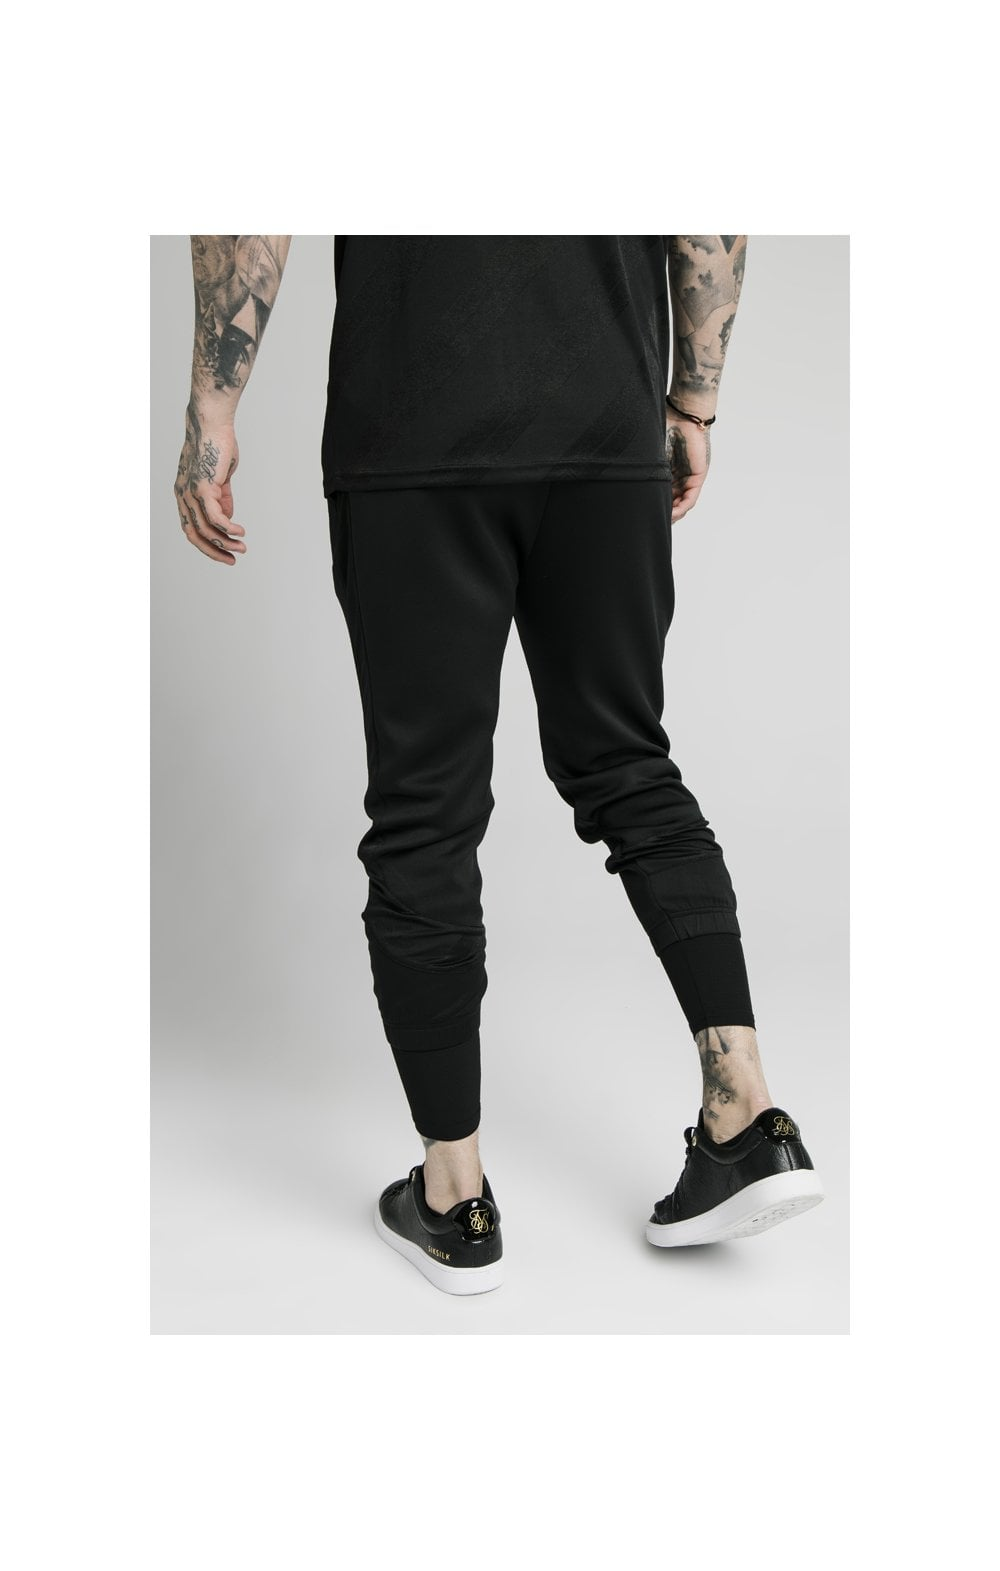 Load image into Gallery viewer, SikSilk Tranquil Dual Cuff Pants - Black & Grey (2)